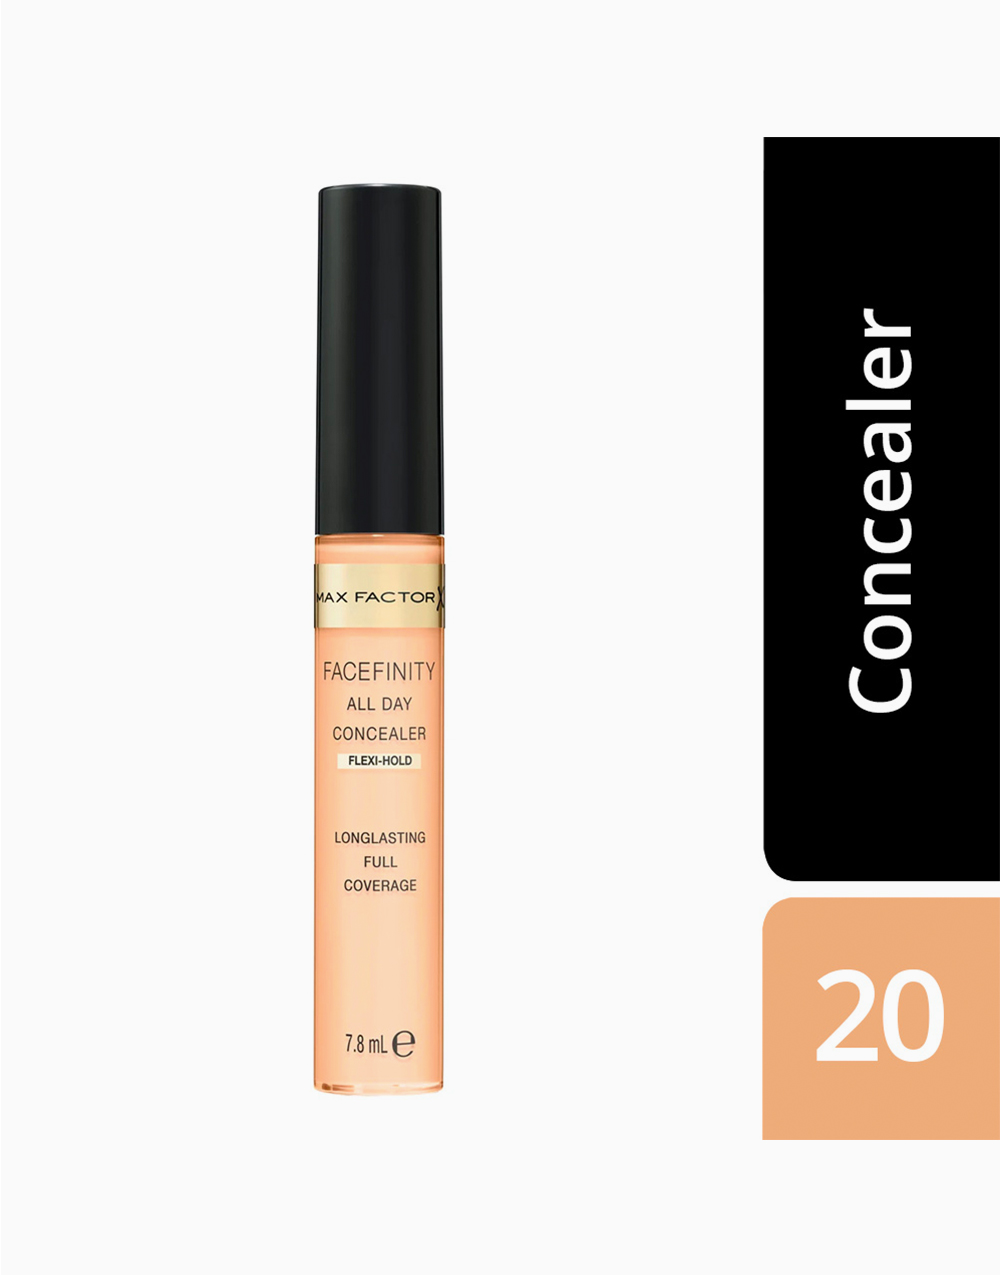 Facefinity All Day Flawless Concealer by Max Factor | 20